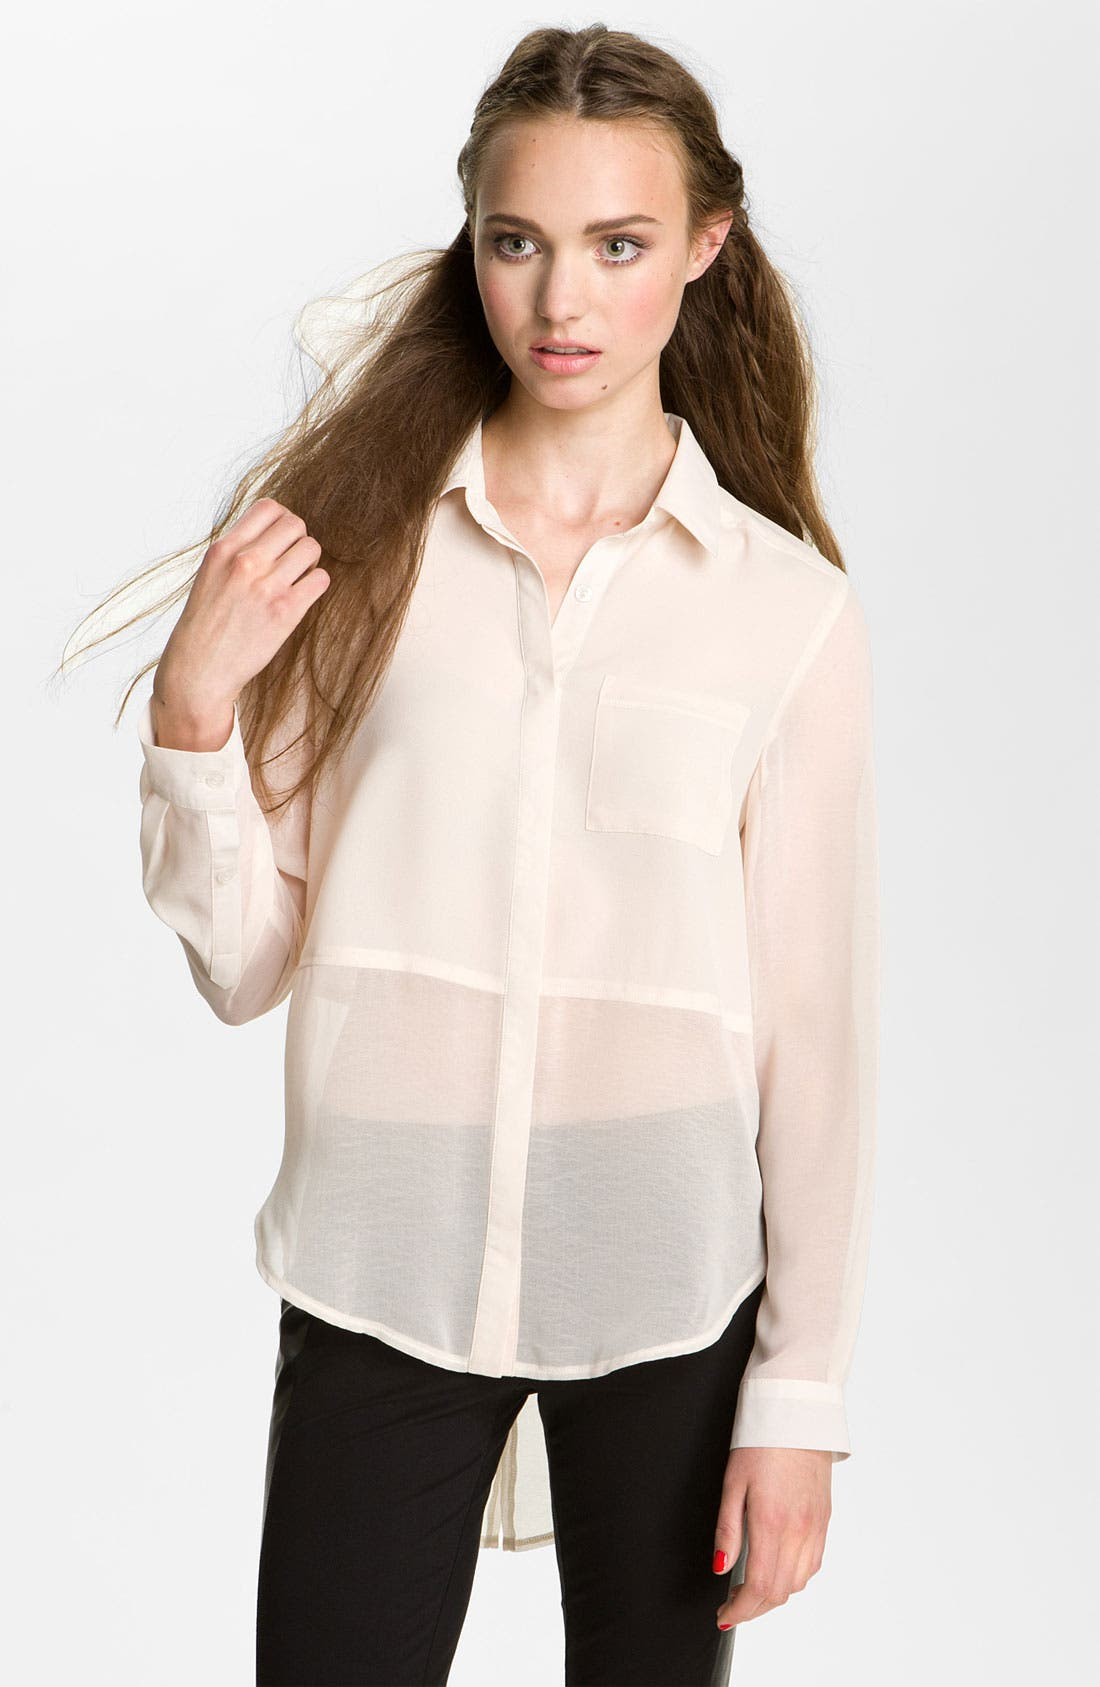 Alternate Image 1 Selected - Lush Sheer Panel High/Low Shirt (Juniors)